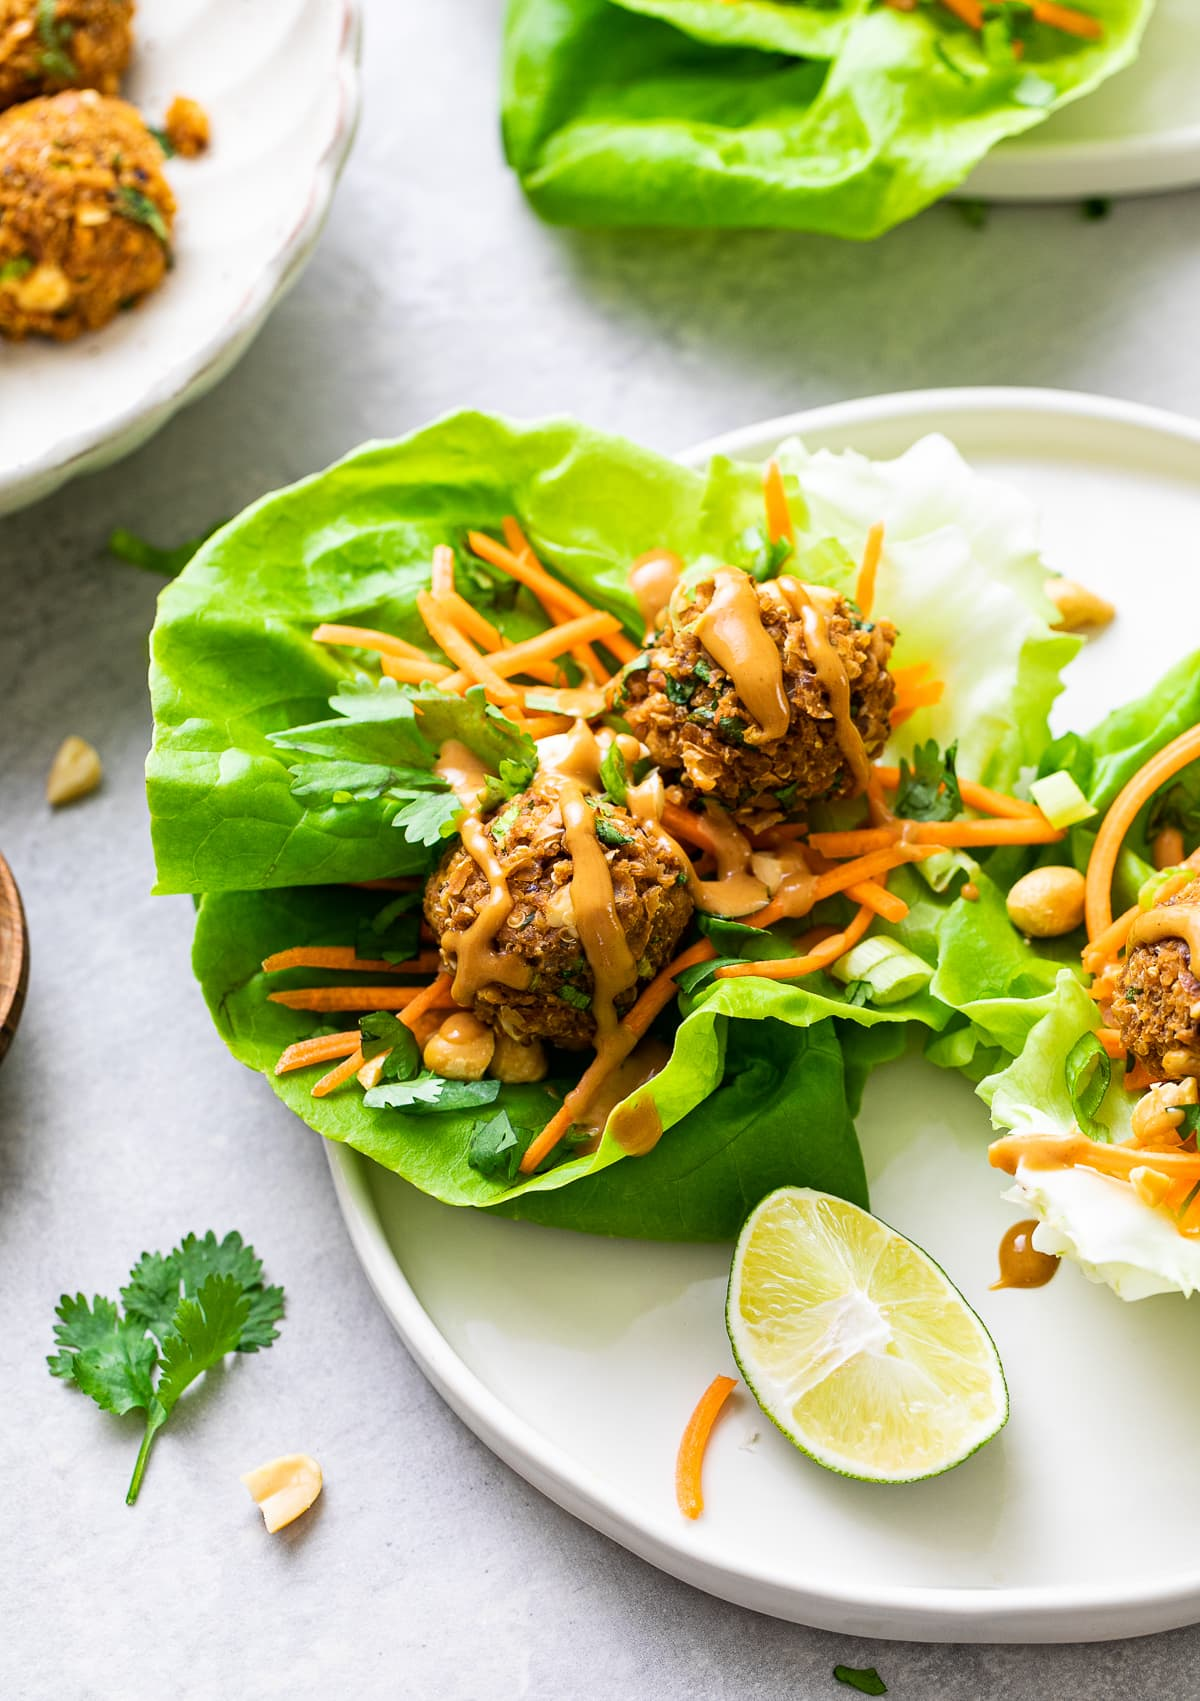 side angle view of vegan lettuce wraps with thai quinoa meatballs on a plate with items surrounding.